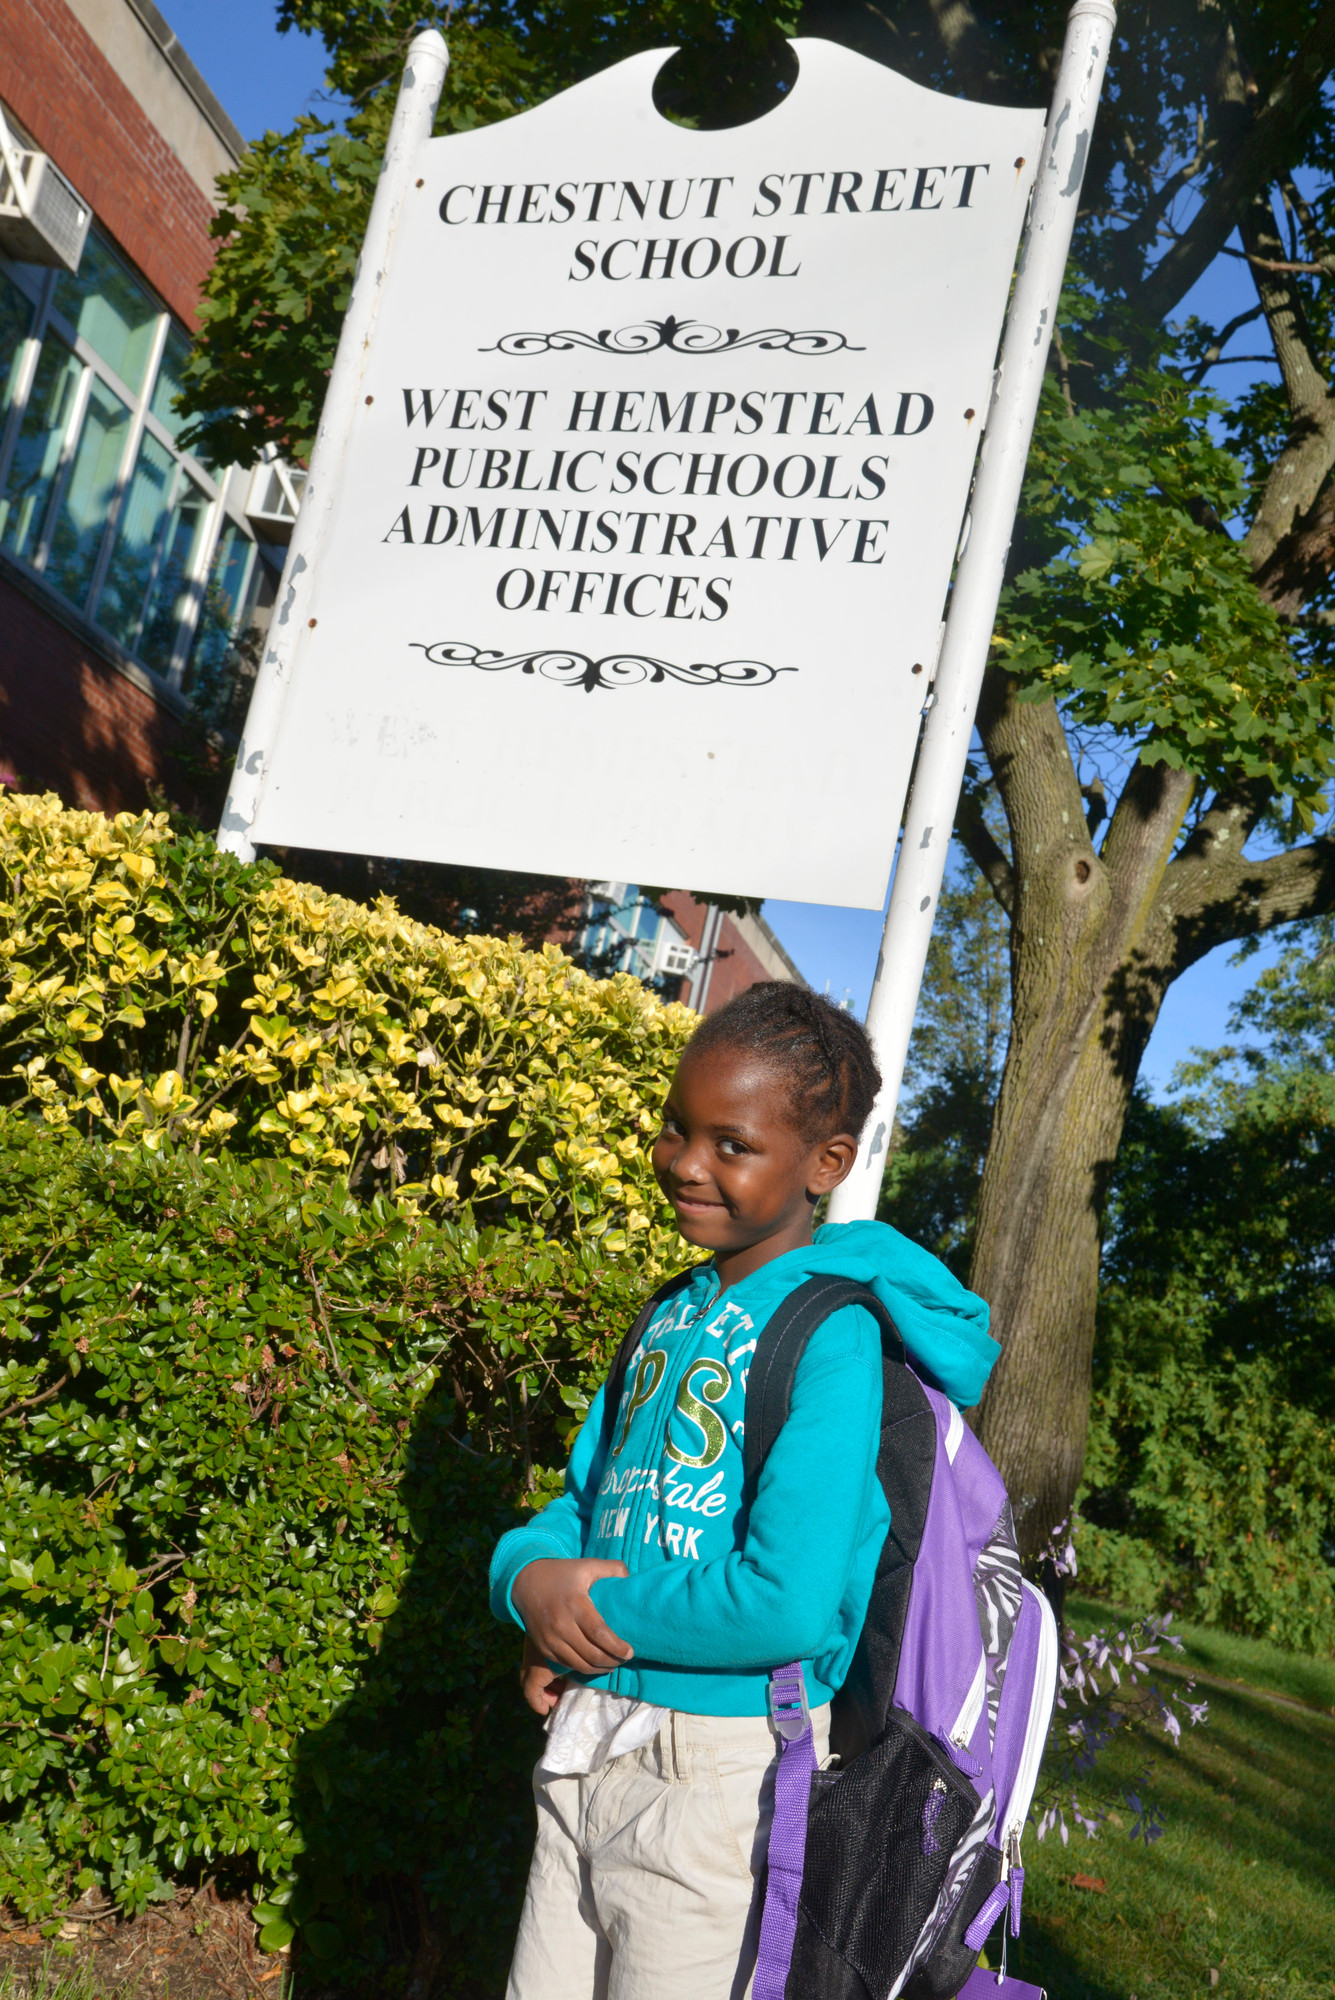 Nylah Fye, 5, prepared to walk through the doors of Chestnut Street School.